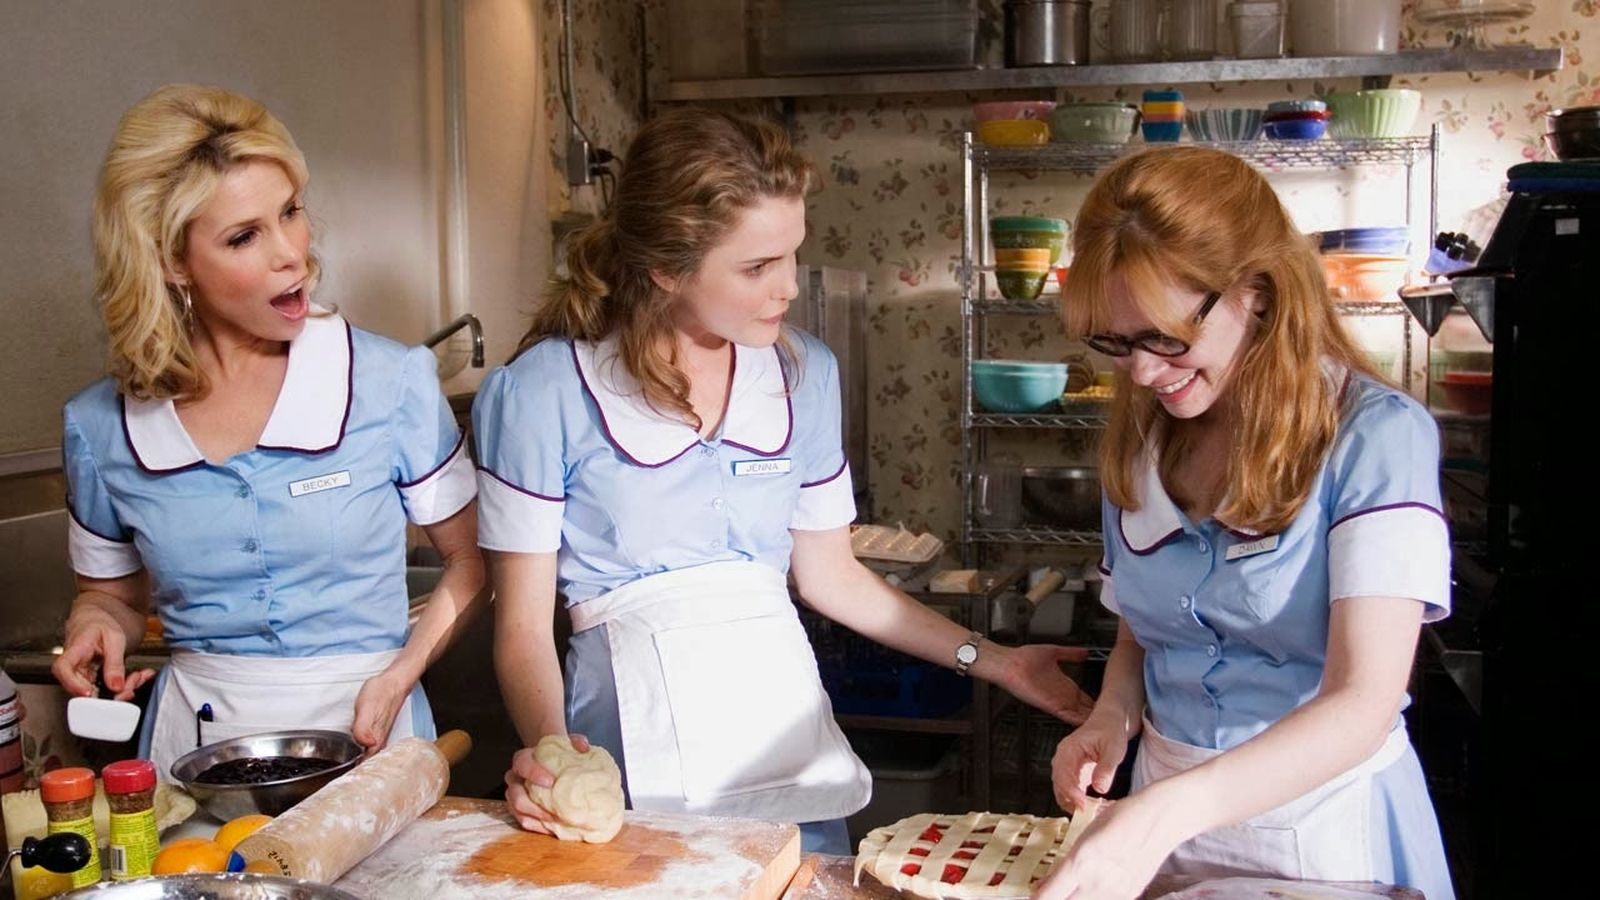 Andrienne Shelly wrote Waitress & co-starred with Keri Russell